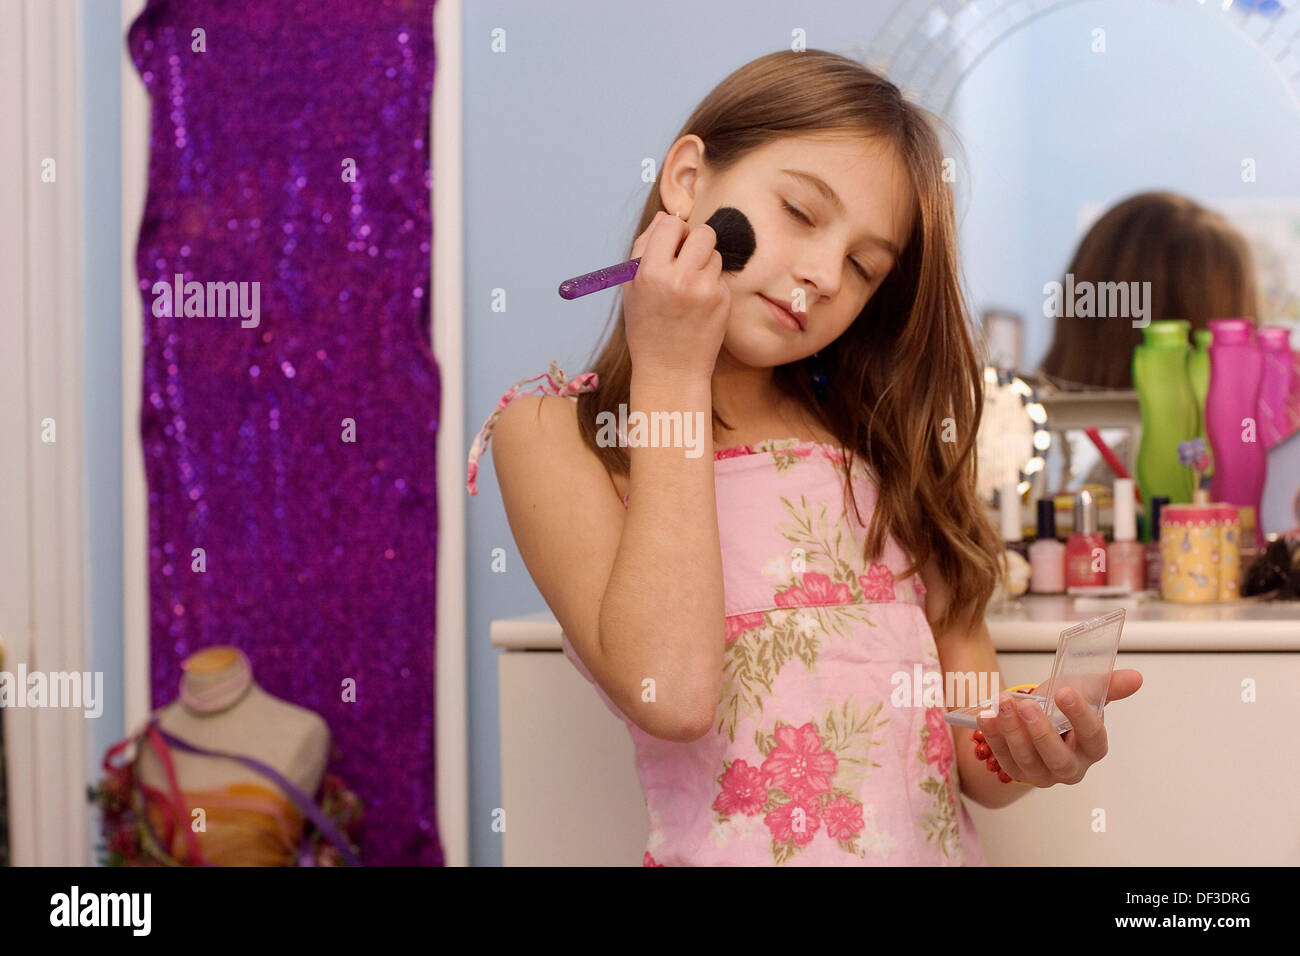 10 Year Old Girl Playing With Make Up In Her Room Stock